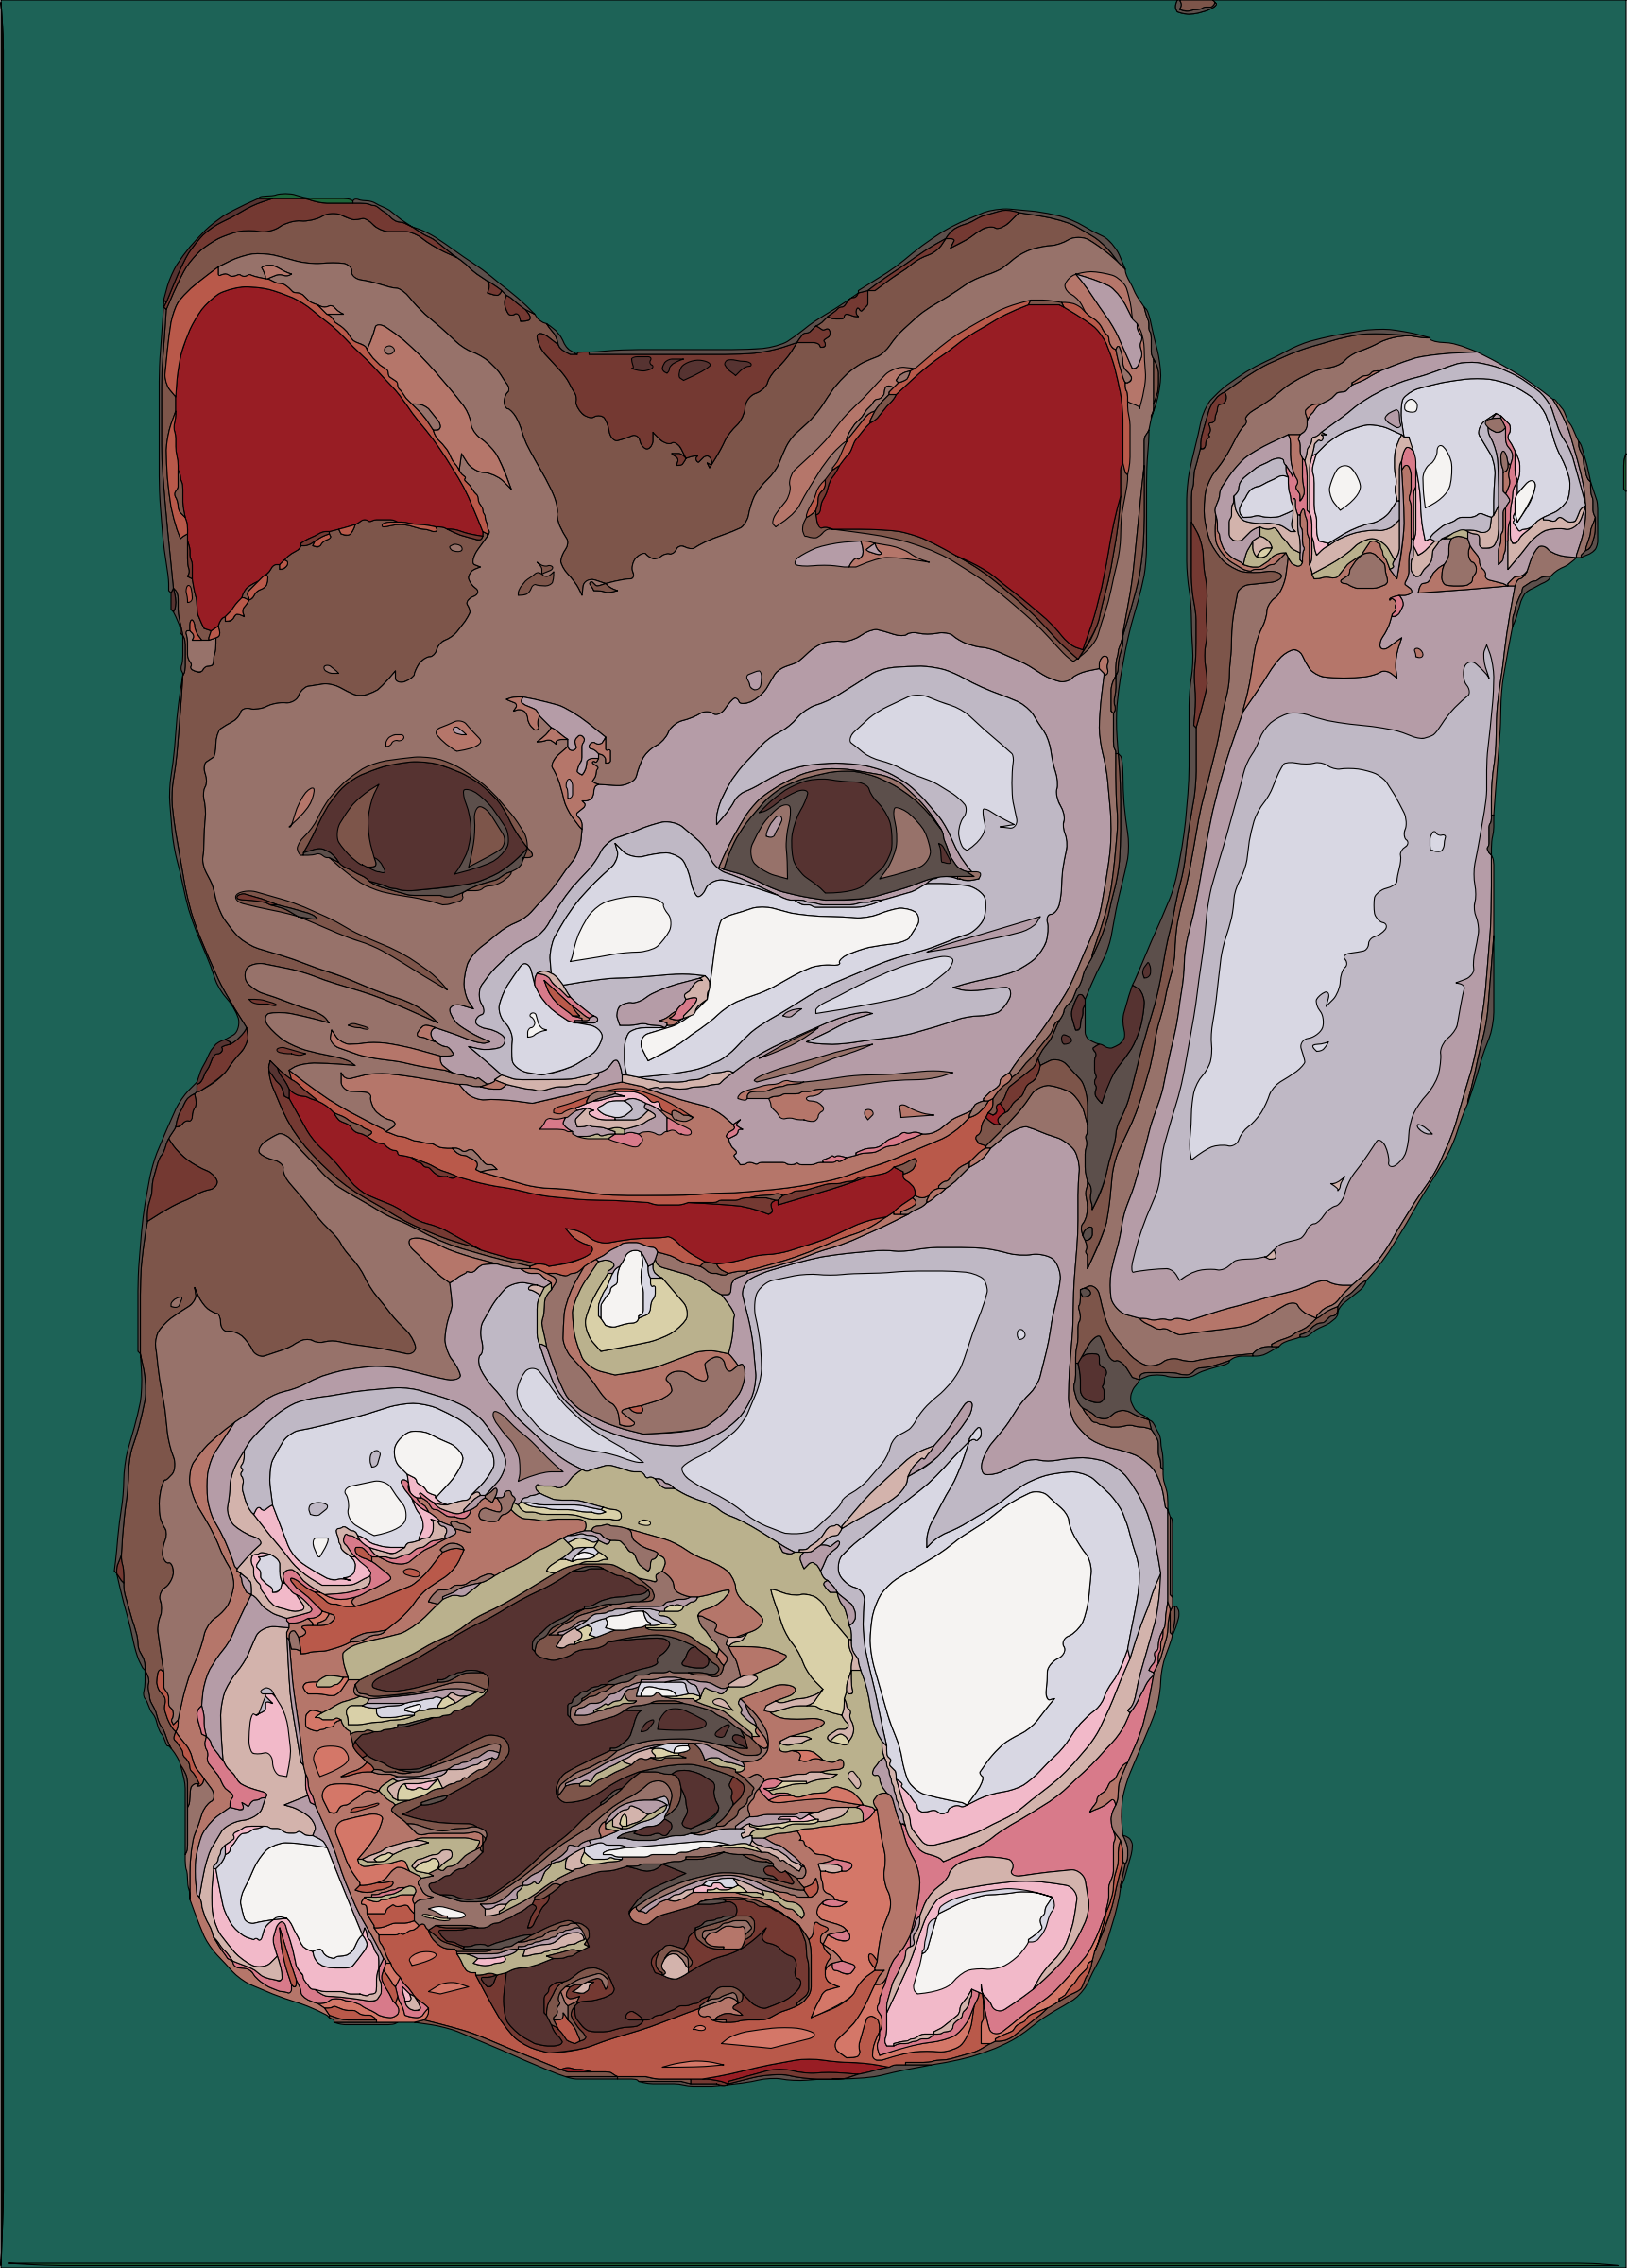 Maneki Neko on Teal by j4p4n